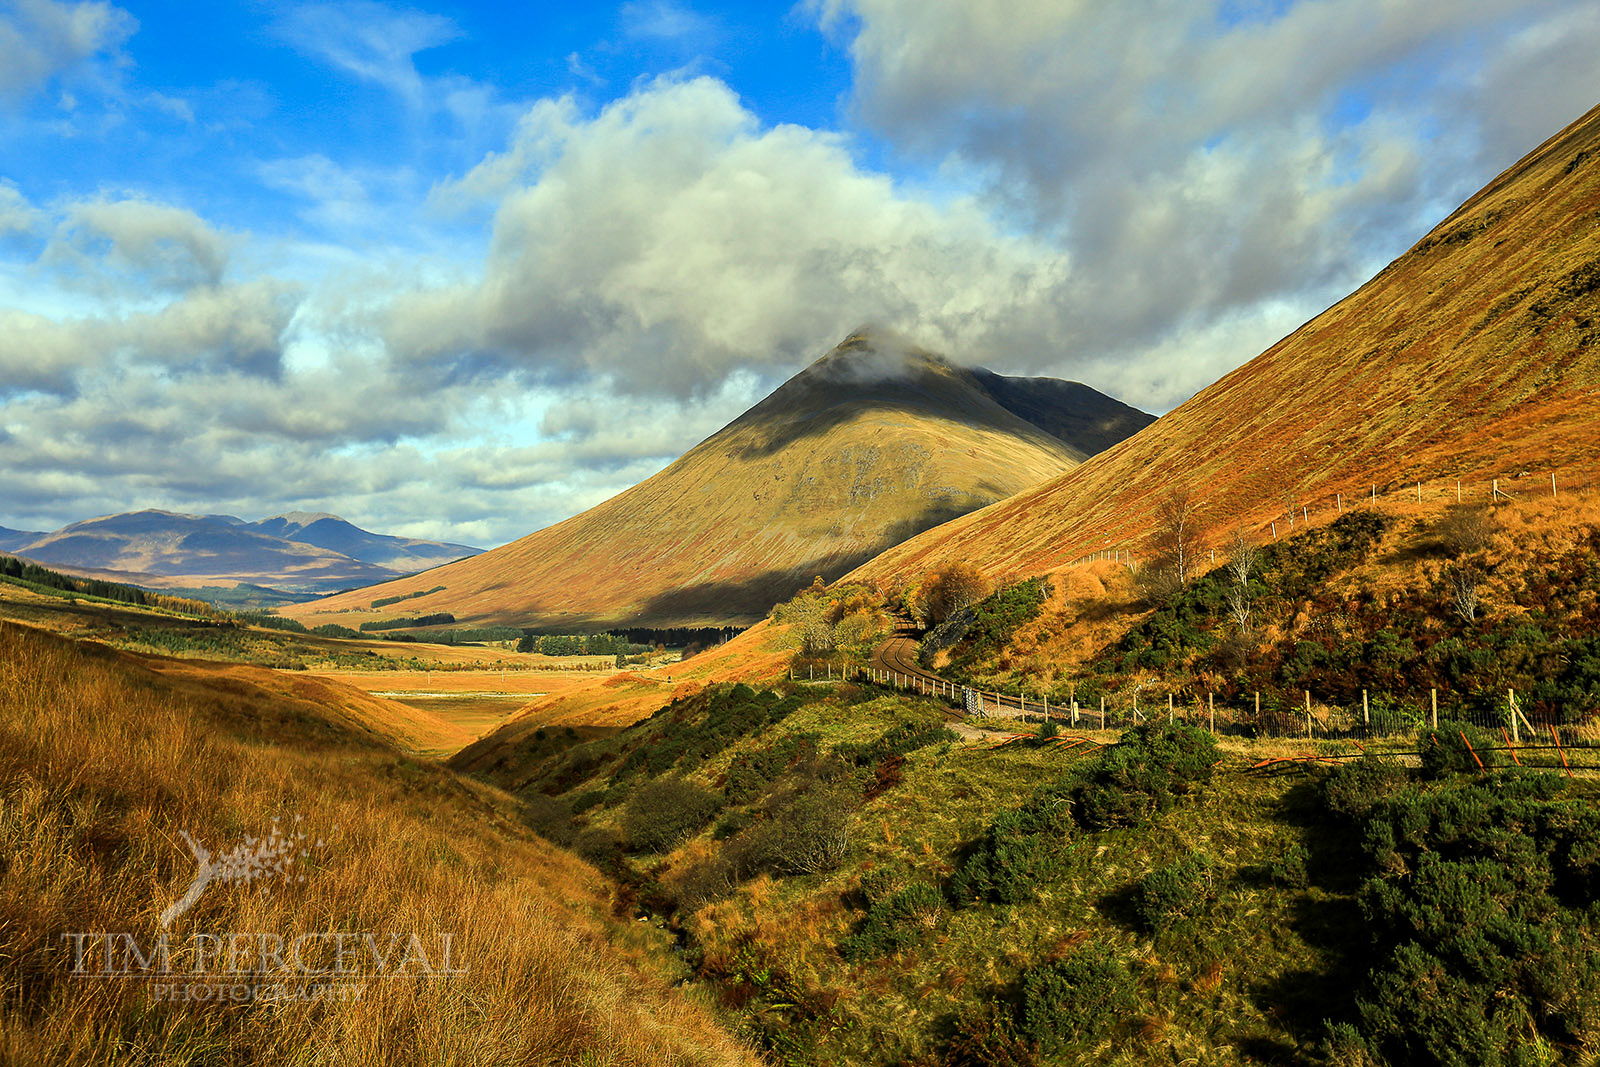 Highland valley at the foot of Beinn a Chaisteil and Beinn Dorain.